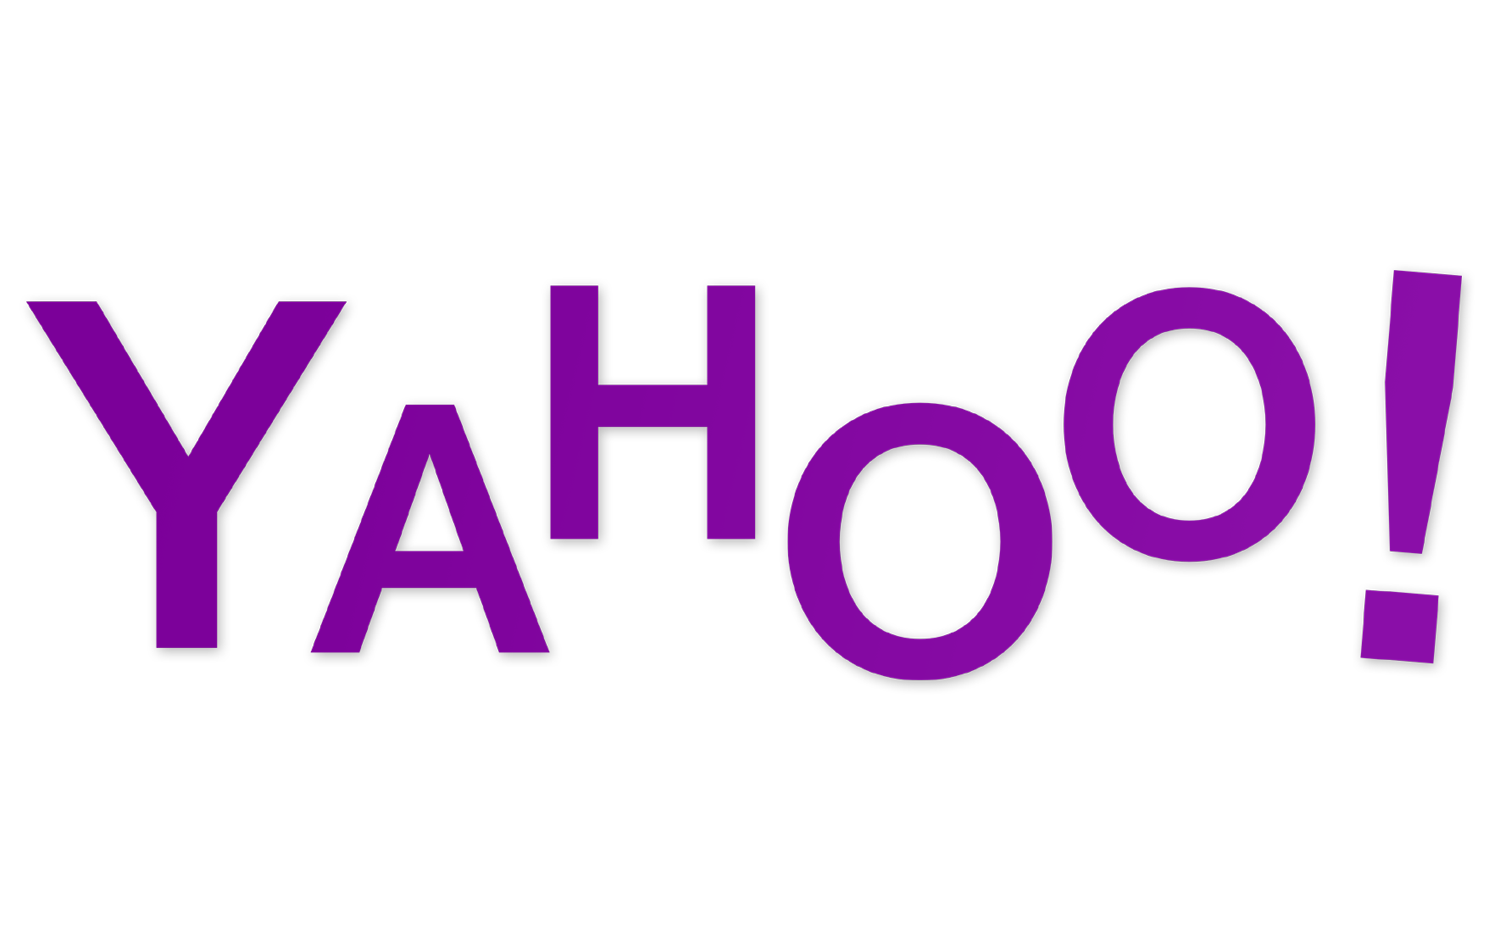 New yahoo logo png. Image in helvetica shareowner